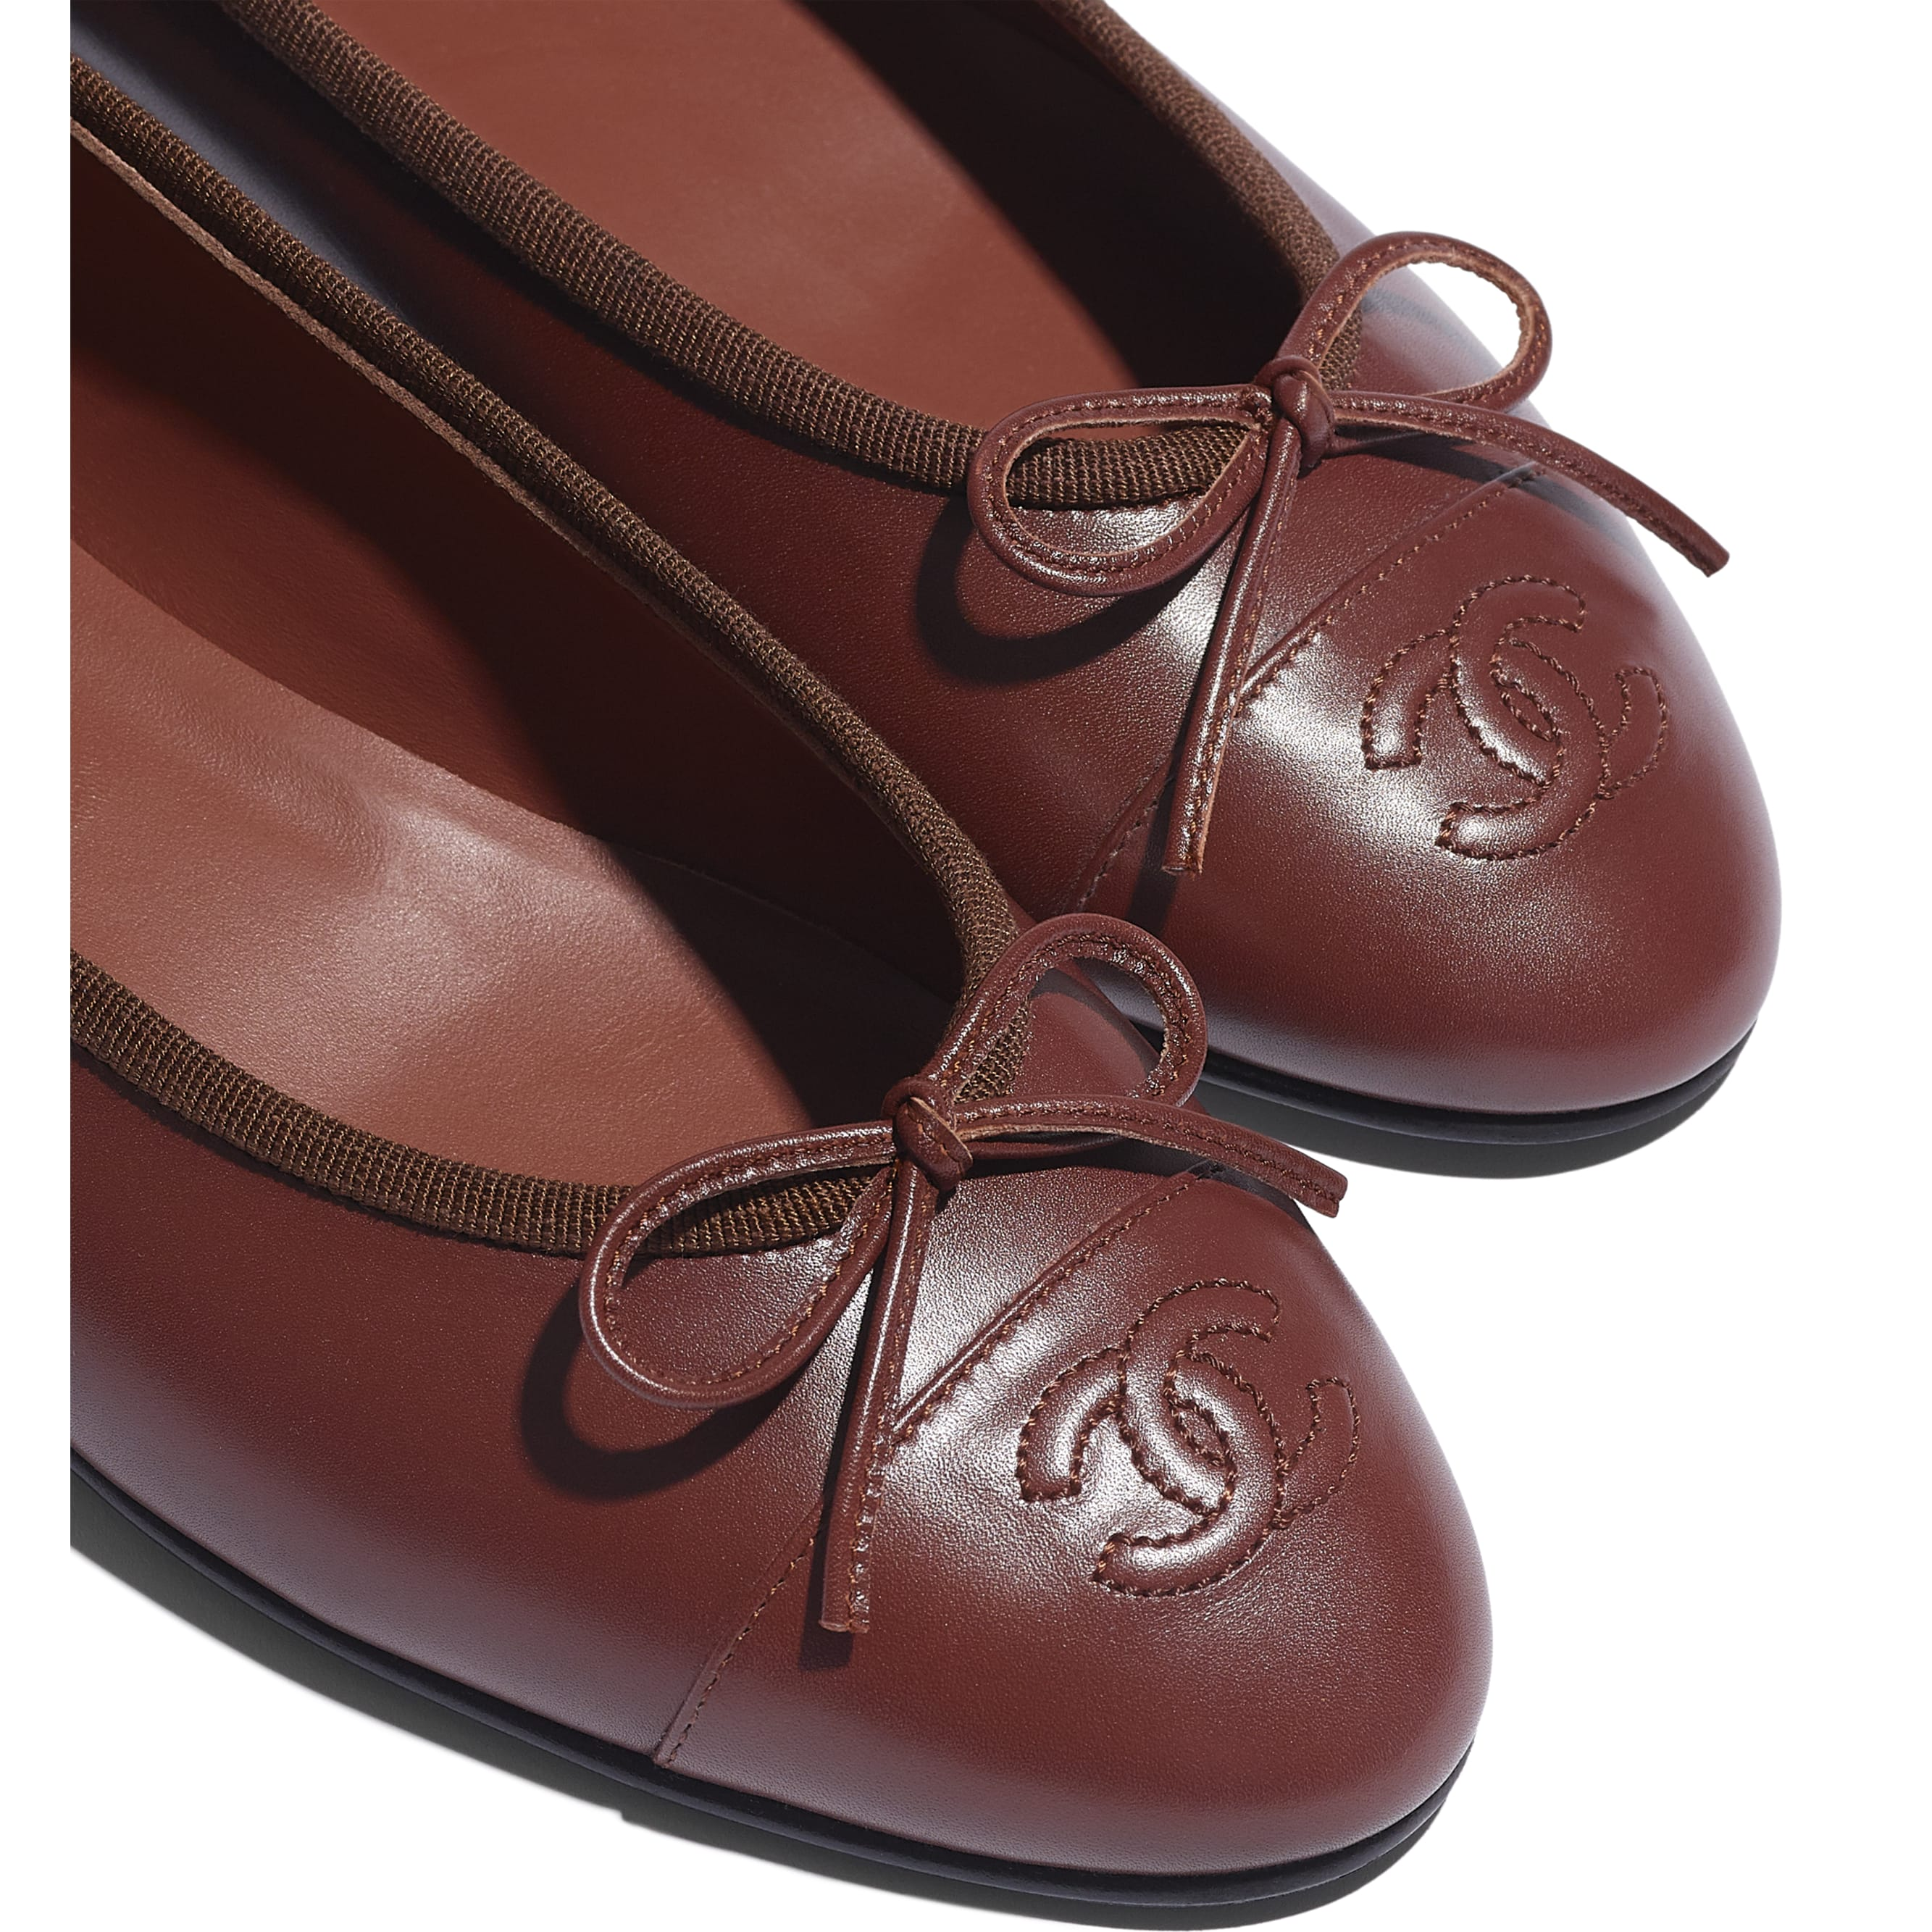 Flats - Brown - Calfskin - CHANEL - Extra view - see standard sized version